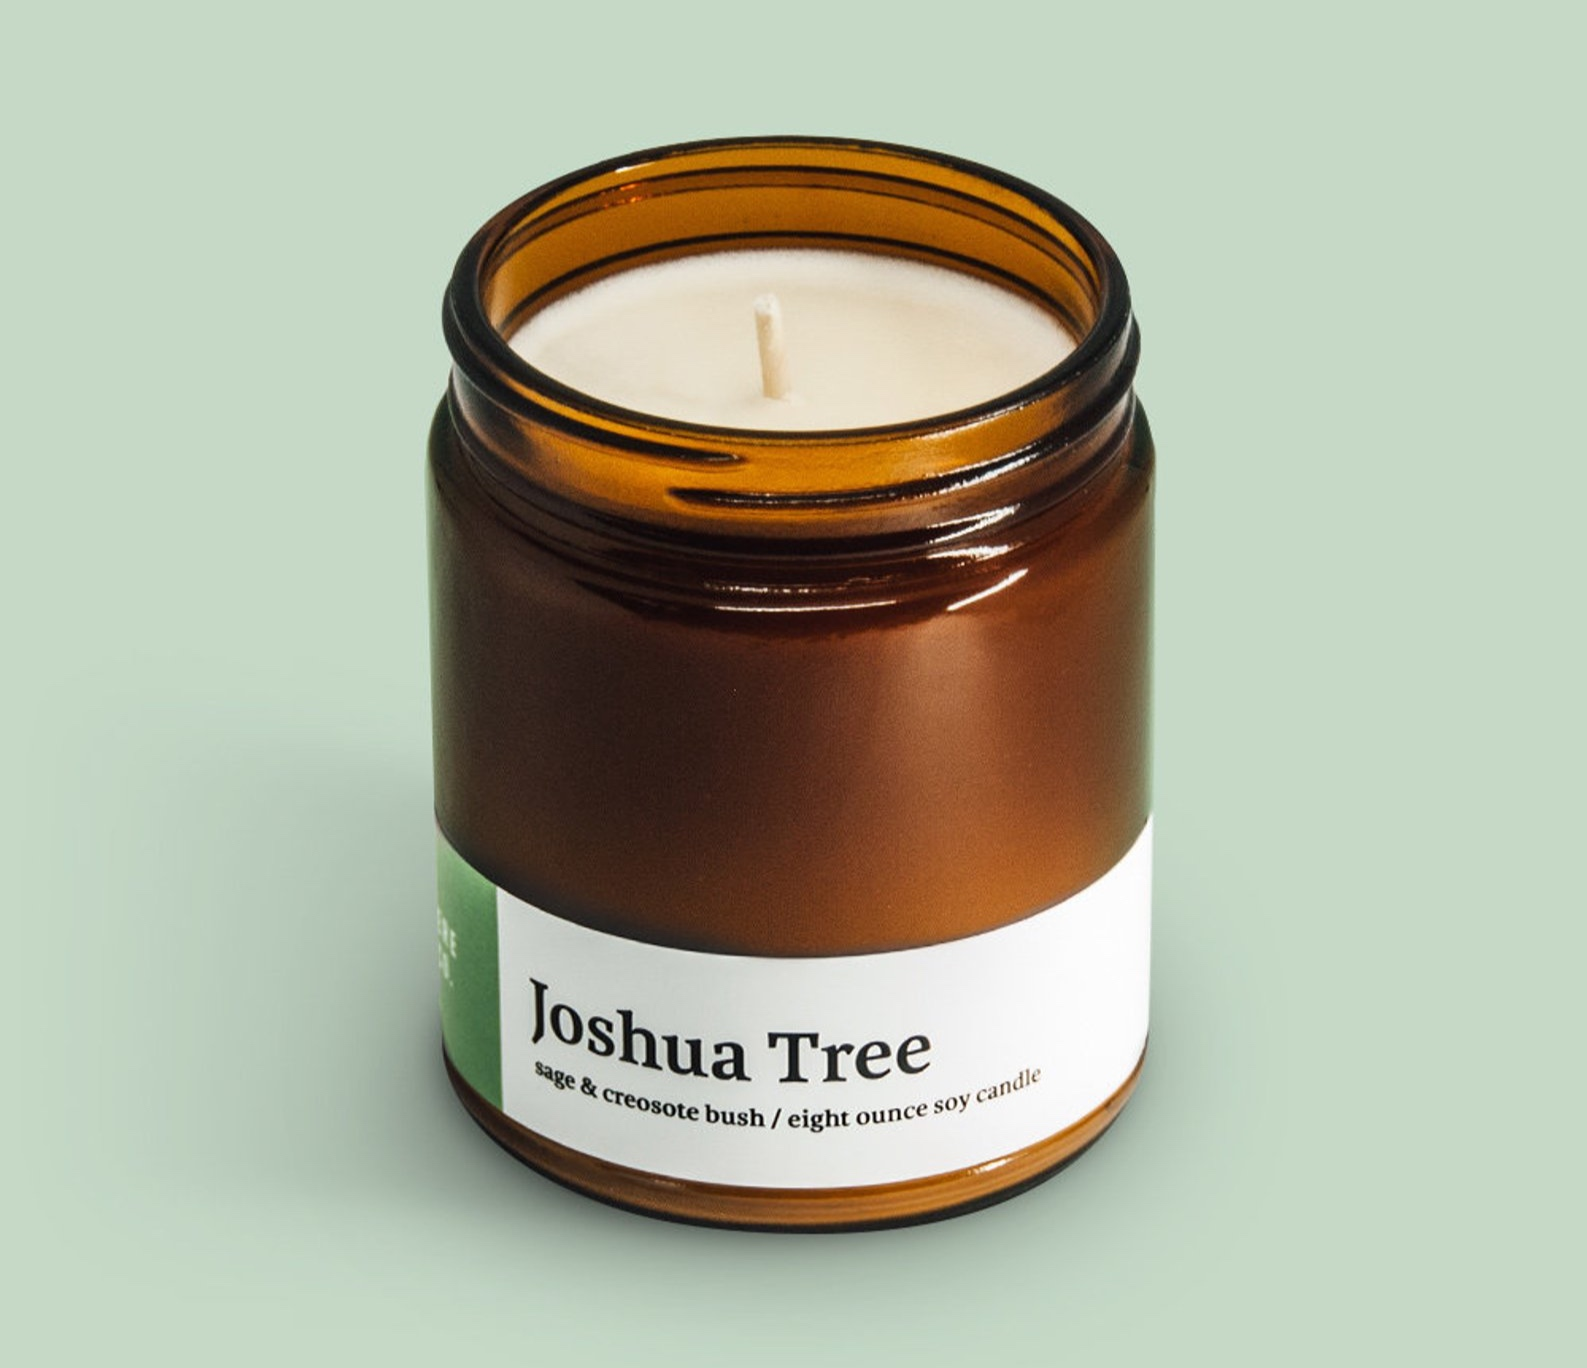 Joshua Tree National Park Soy Candle By Elsewhere Candle Co